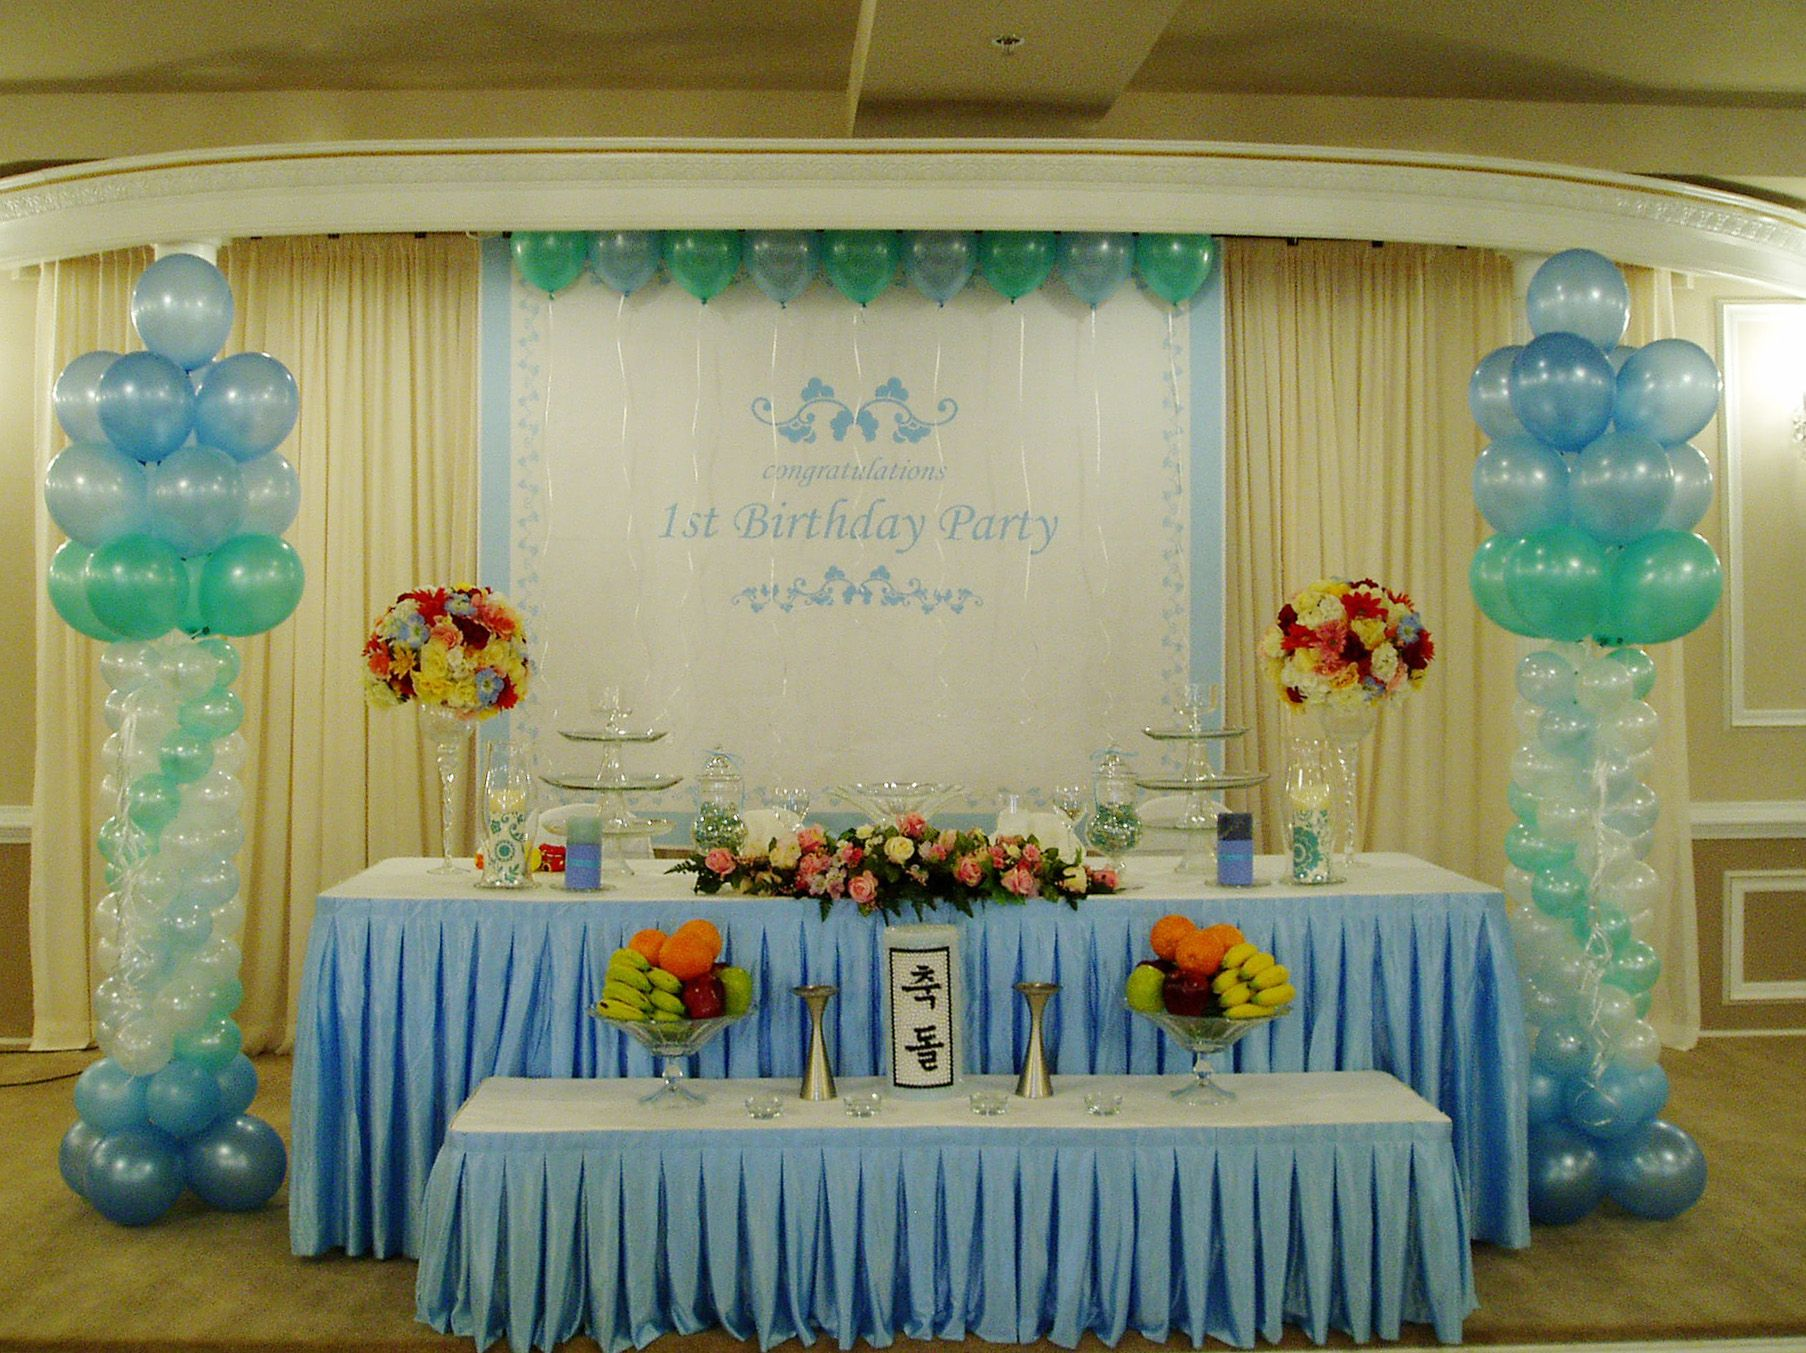 Baby's First Birthday Celebration Head Table Setting